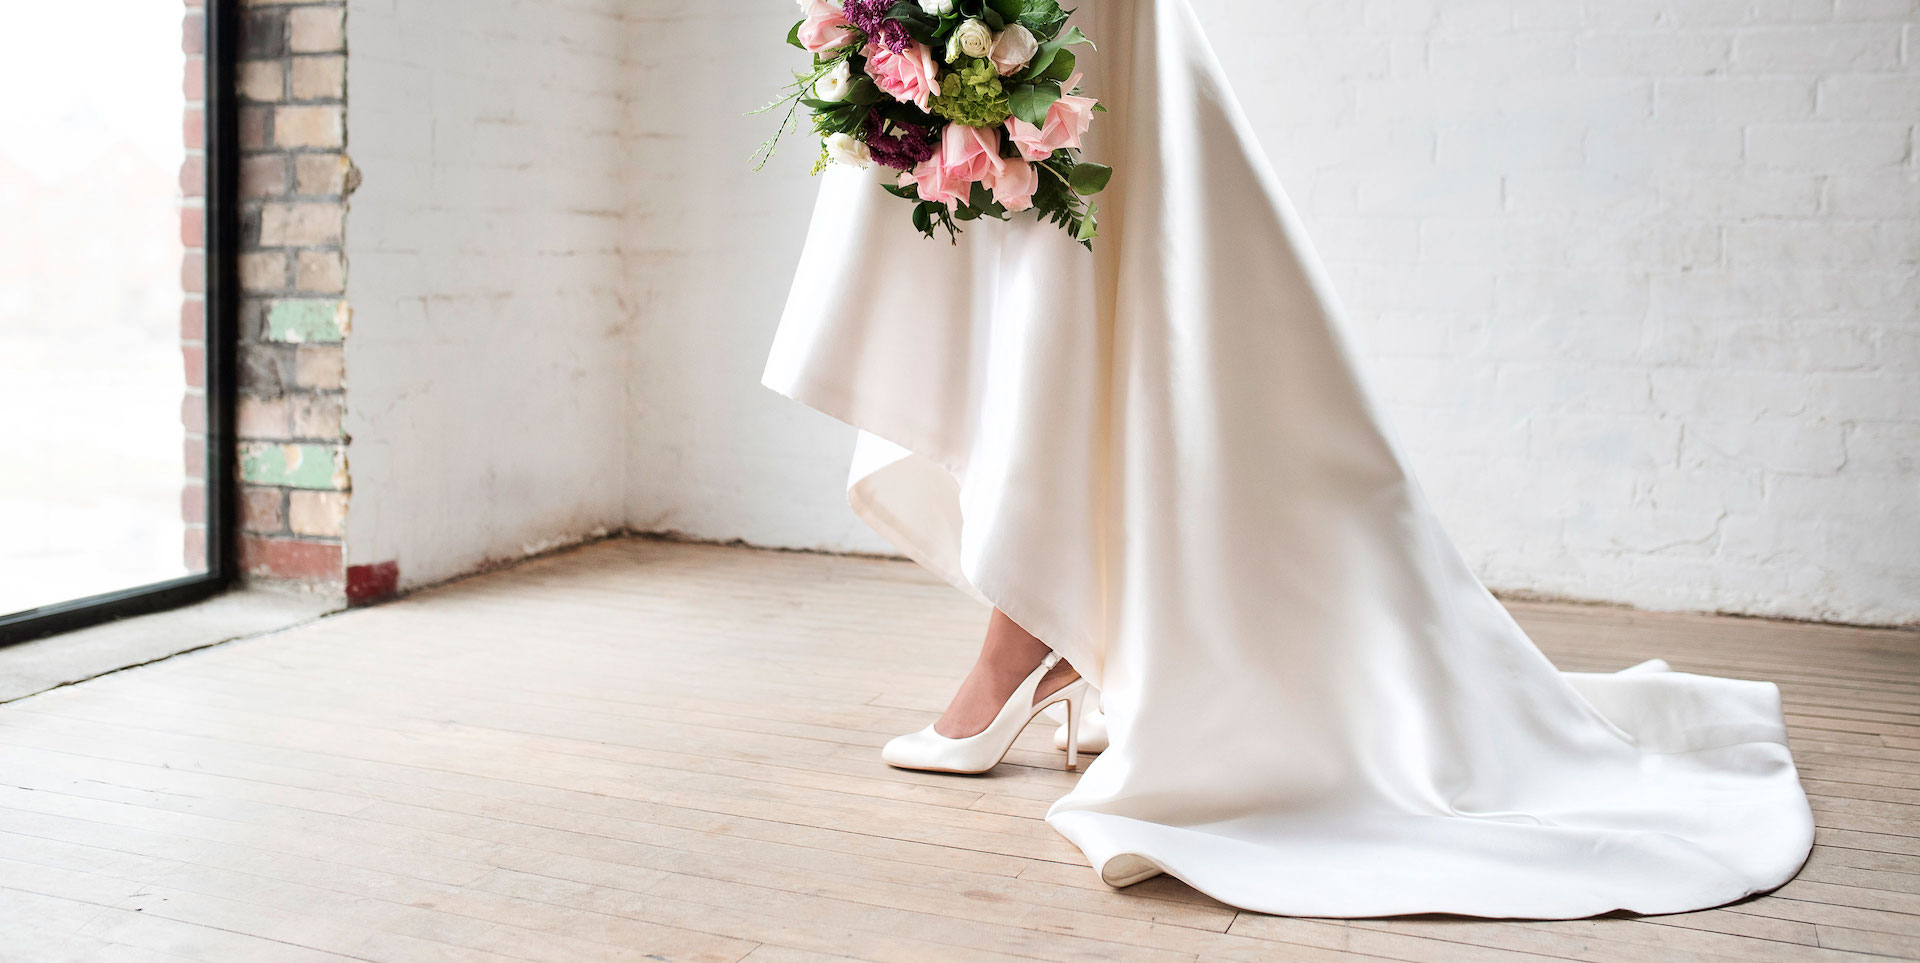 shoes for wedding dress photo - 1